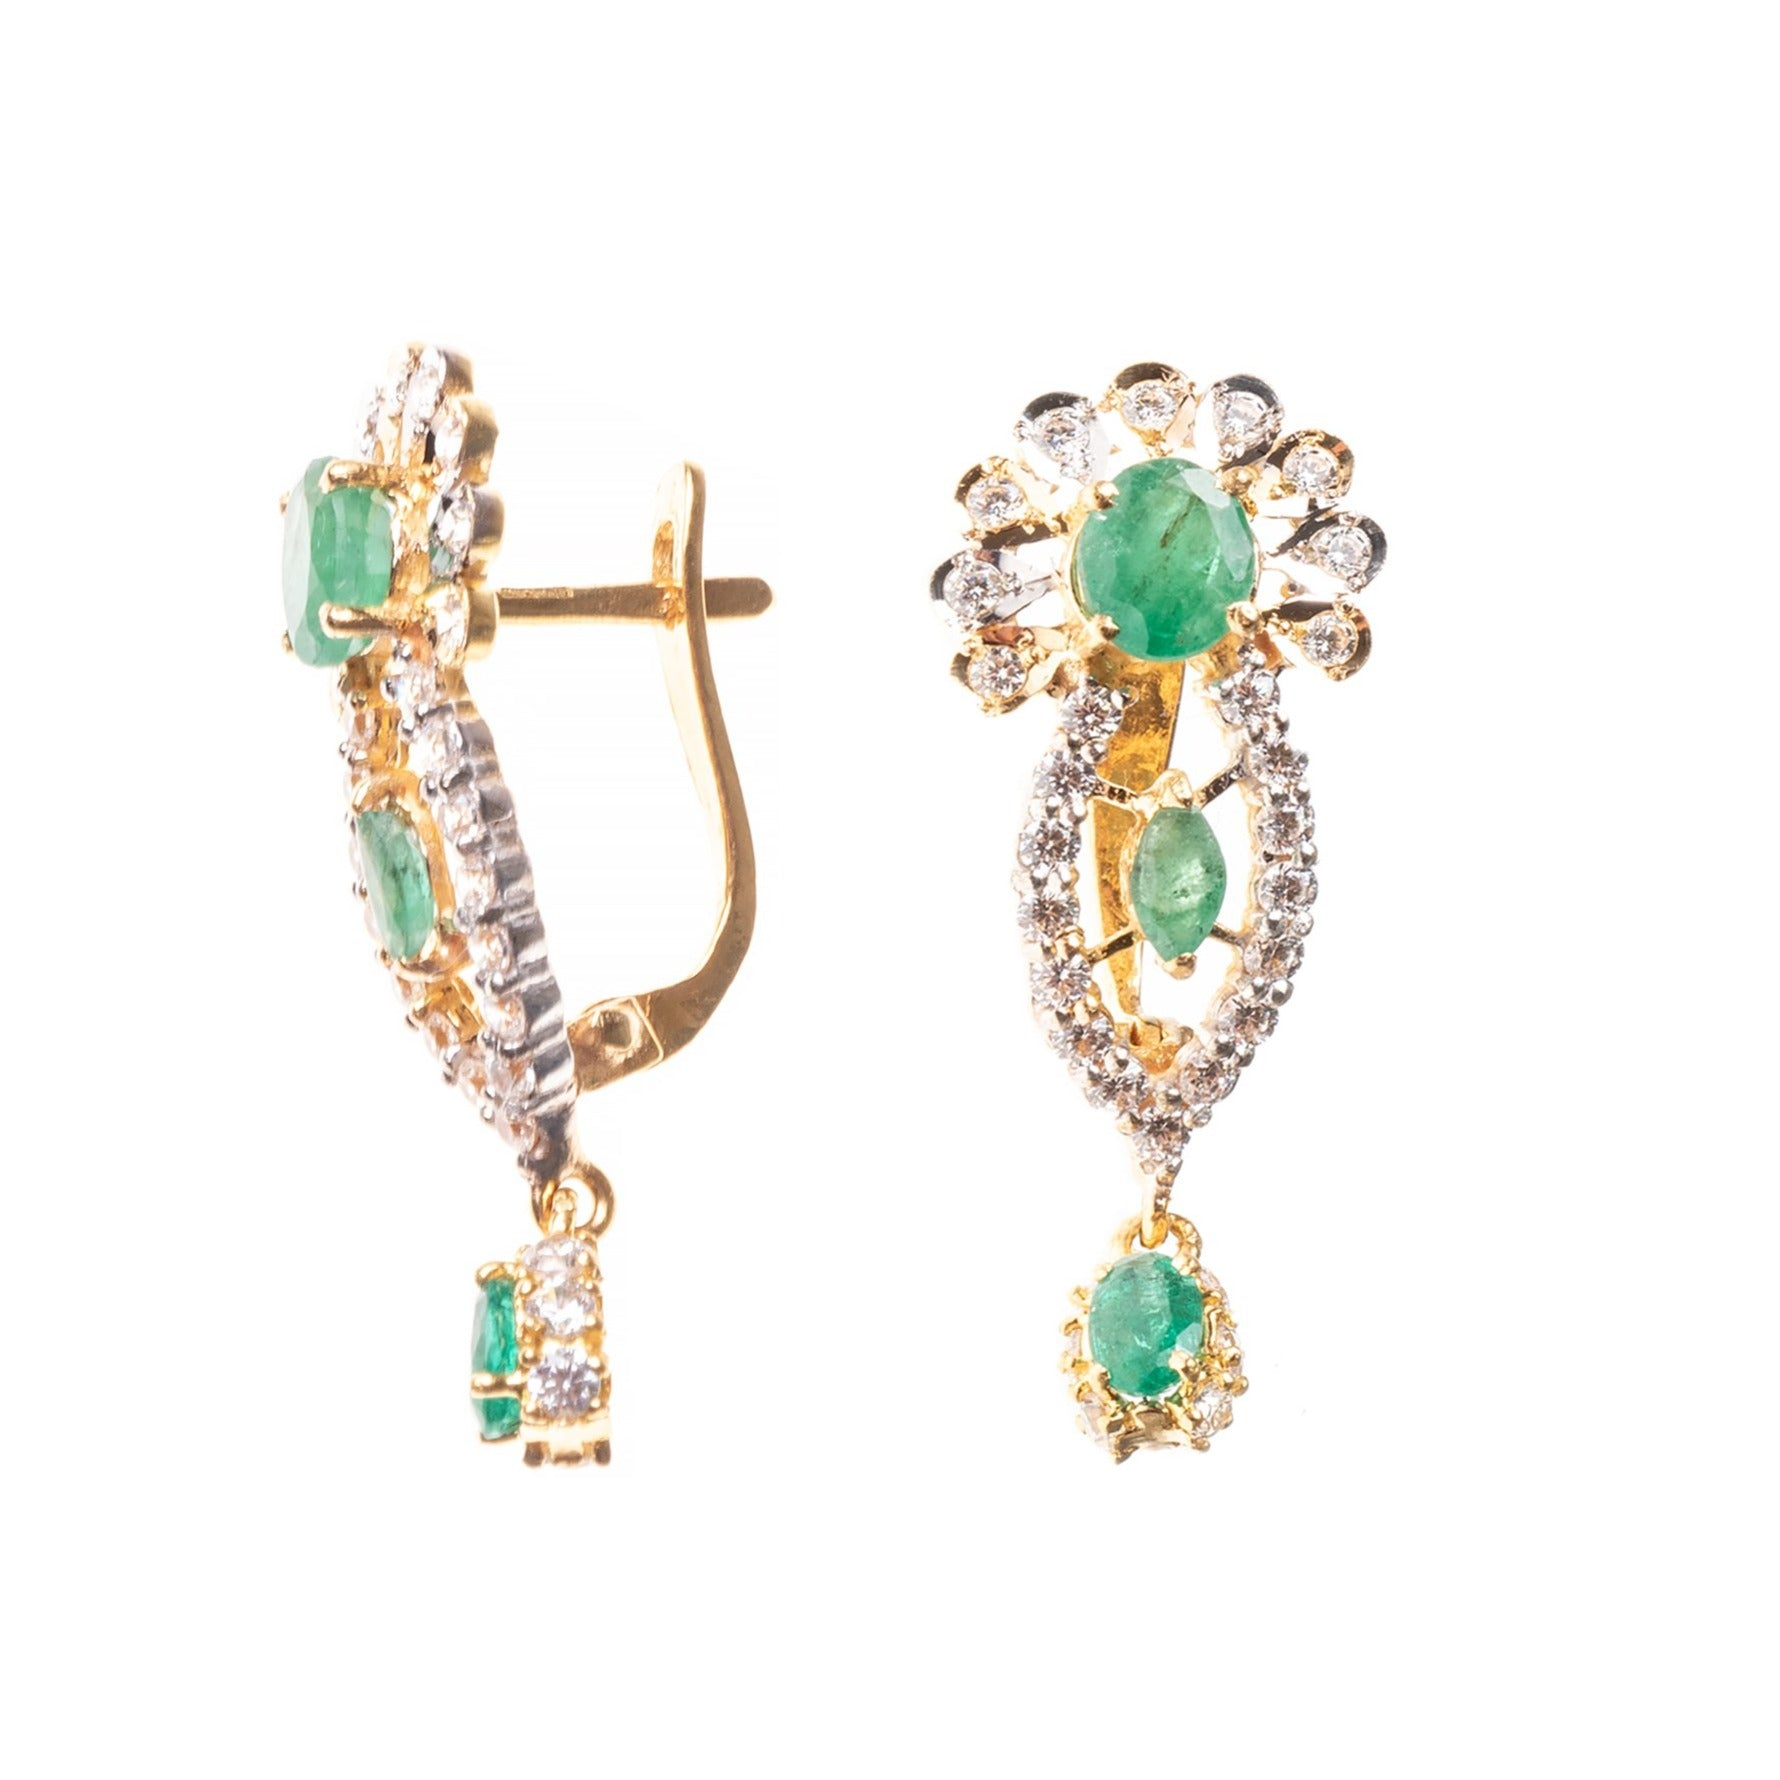 22ct Gold Green and White Cubic Zirconia Drop Hoop Earrings (7.1g) E-7868